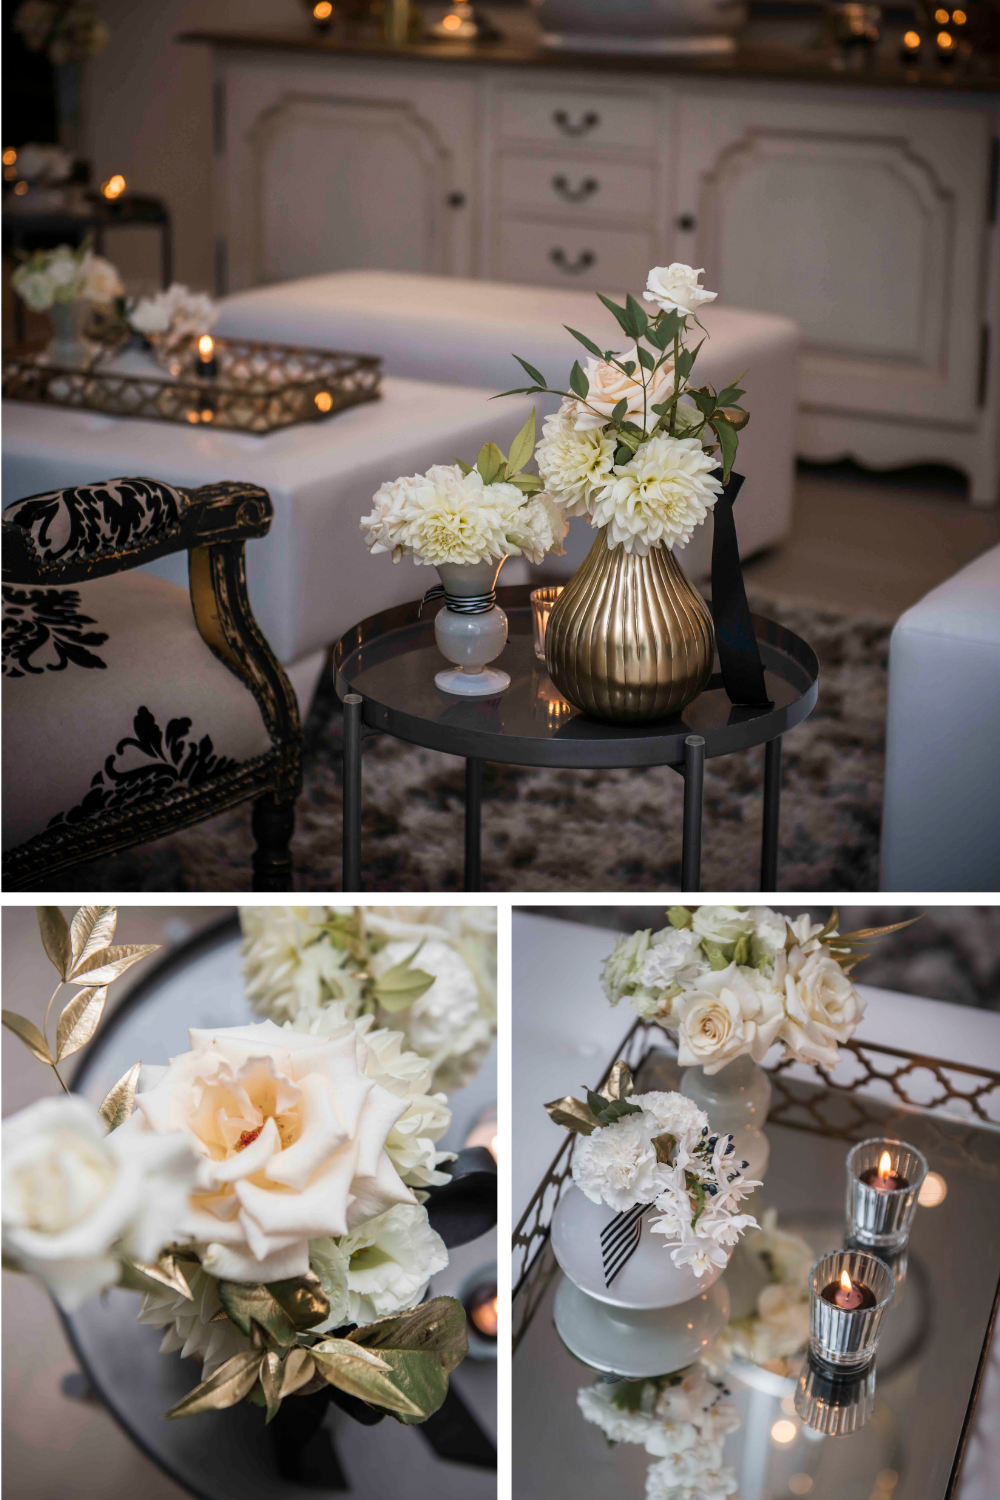 Vintage white and black furniture with gold vases and white flowers